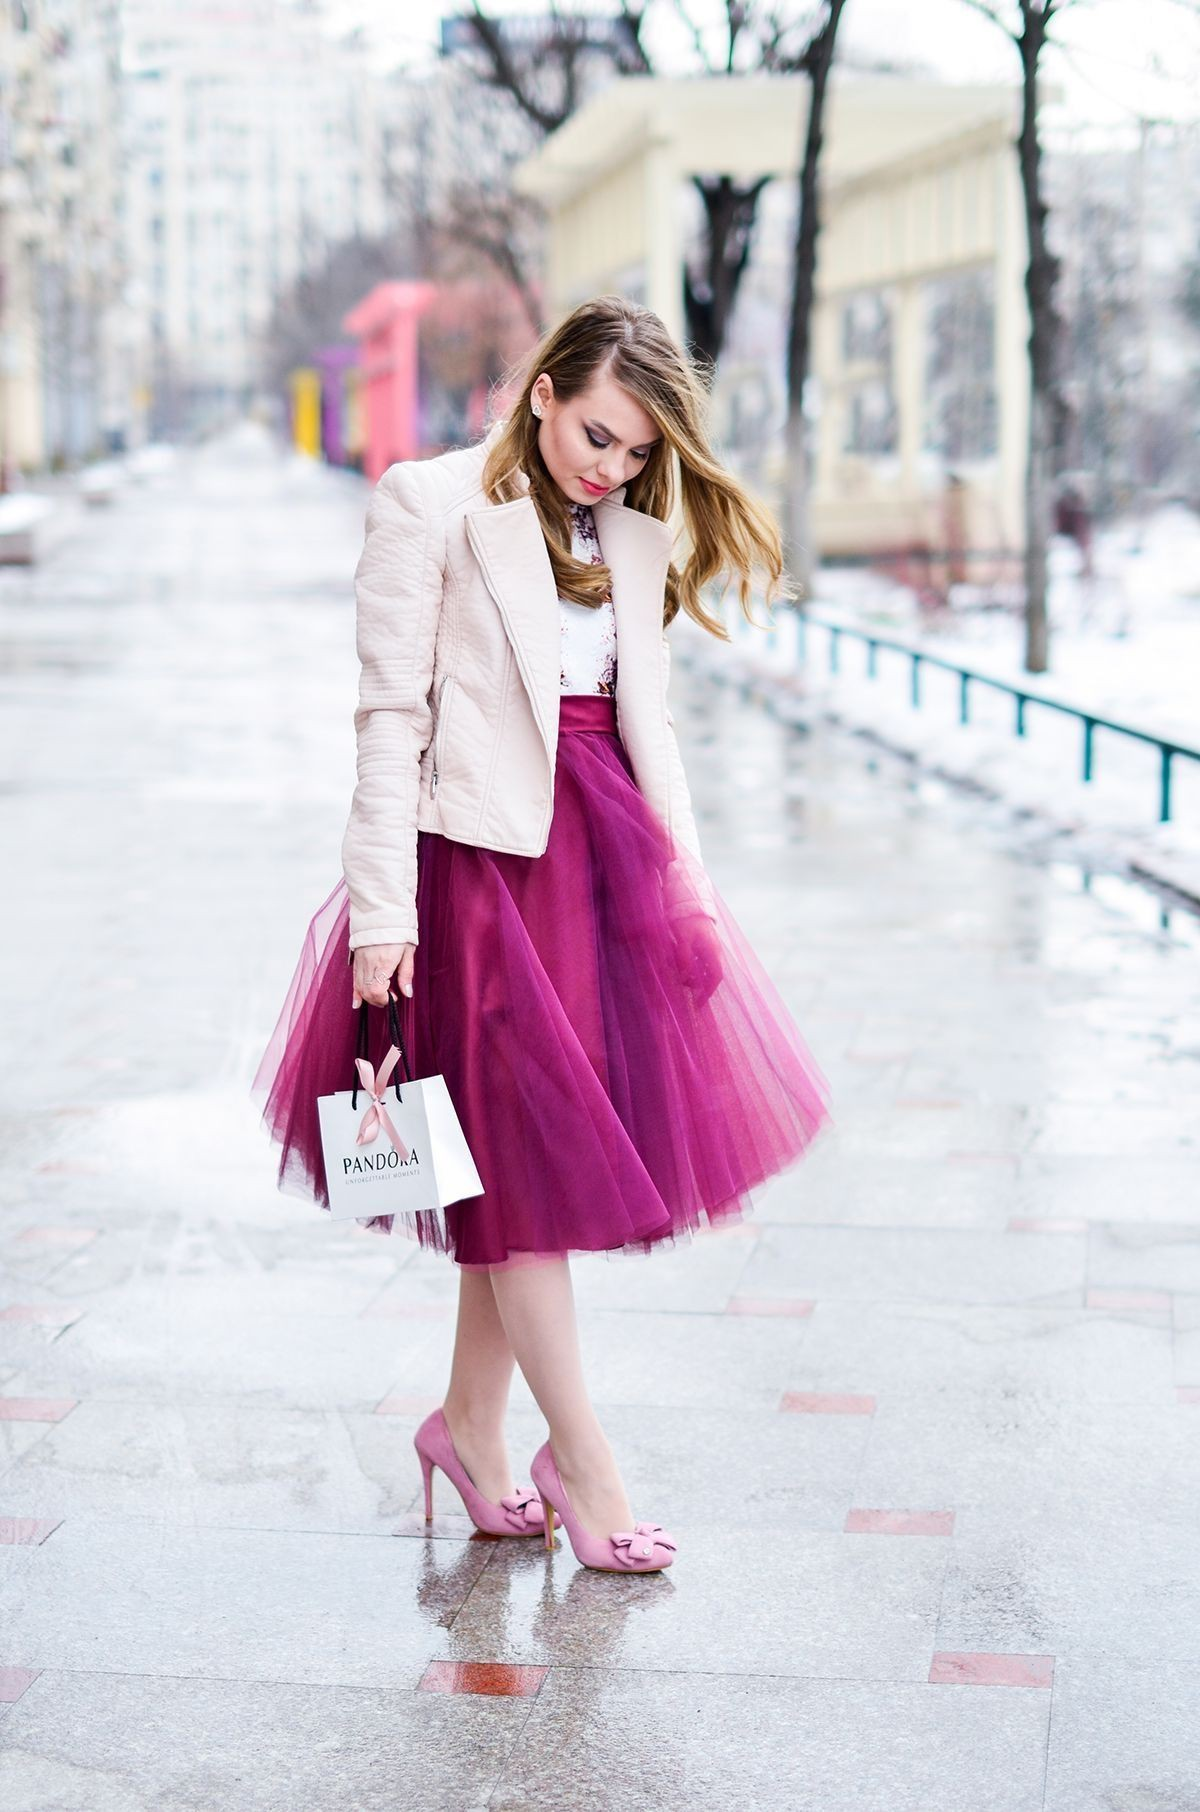 Beautiful and elegant tulle outfit, Crop top